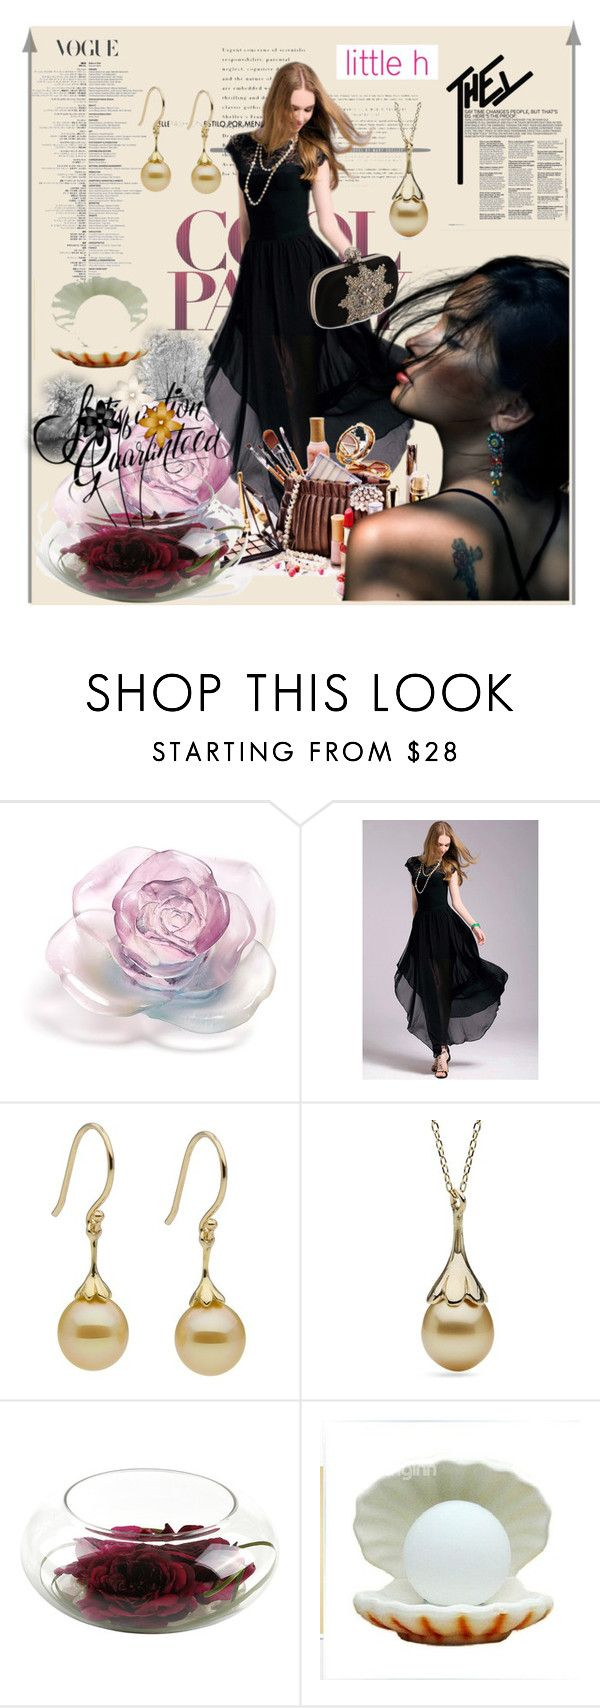 """Little h Jewelry"" by lip-balm ❤ liked on Polyvore featuring Daum, Alexander McQueen, pearljewelry and littlehjewelry"